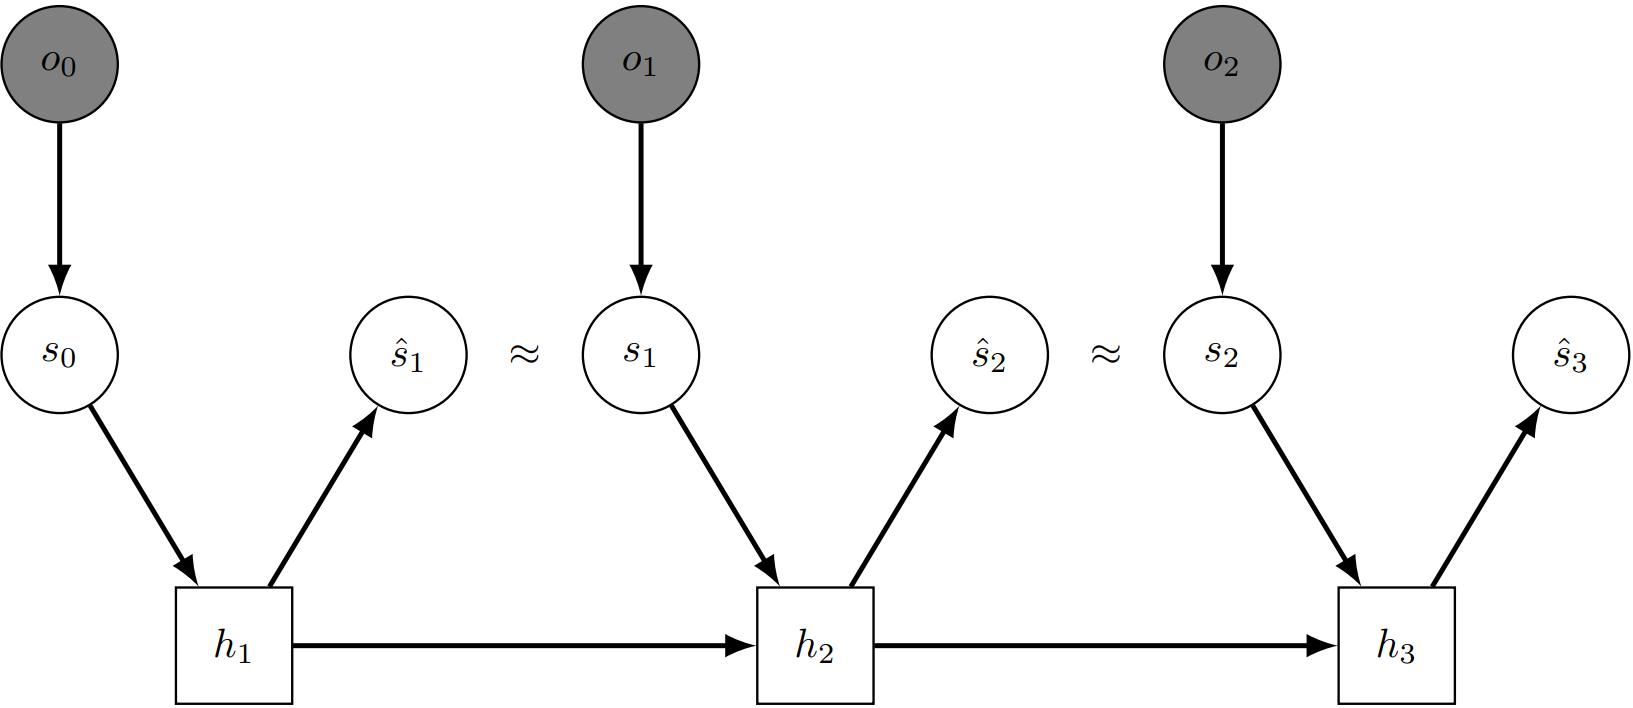 Temporal Predictive Coding For Model-Based Planning In Latent Space